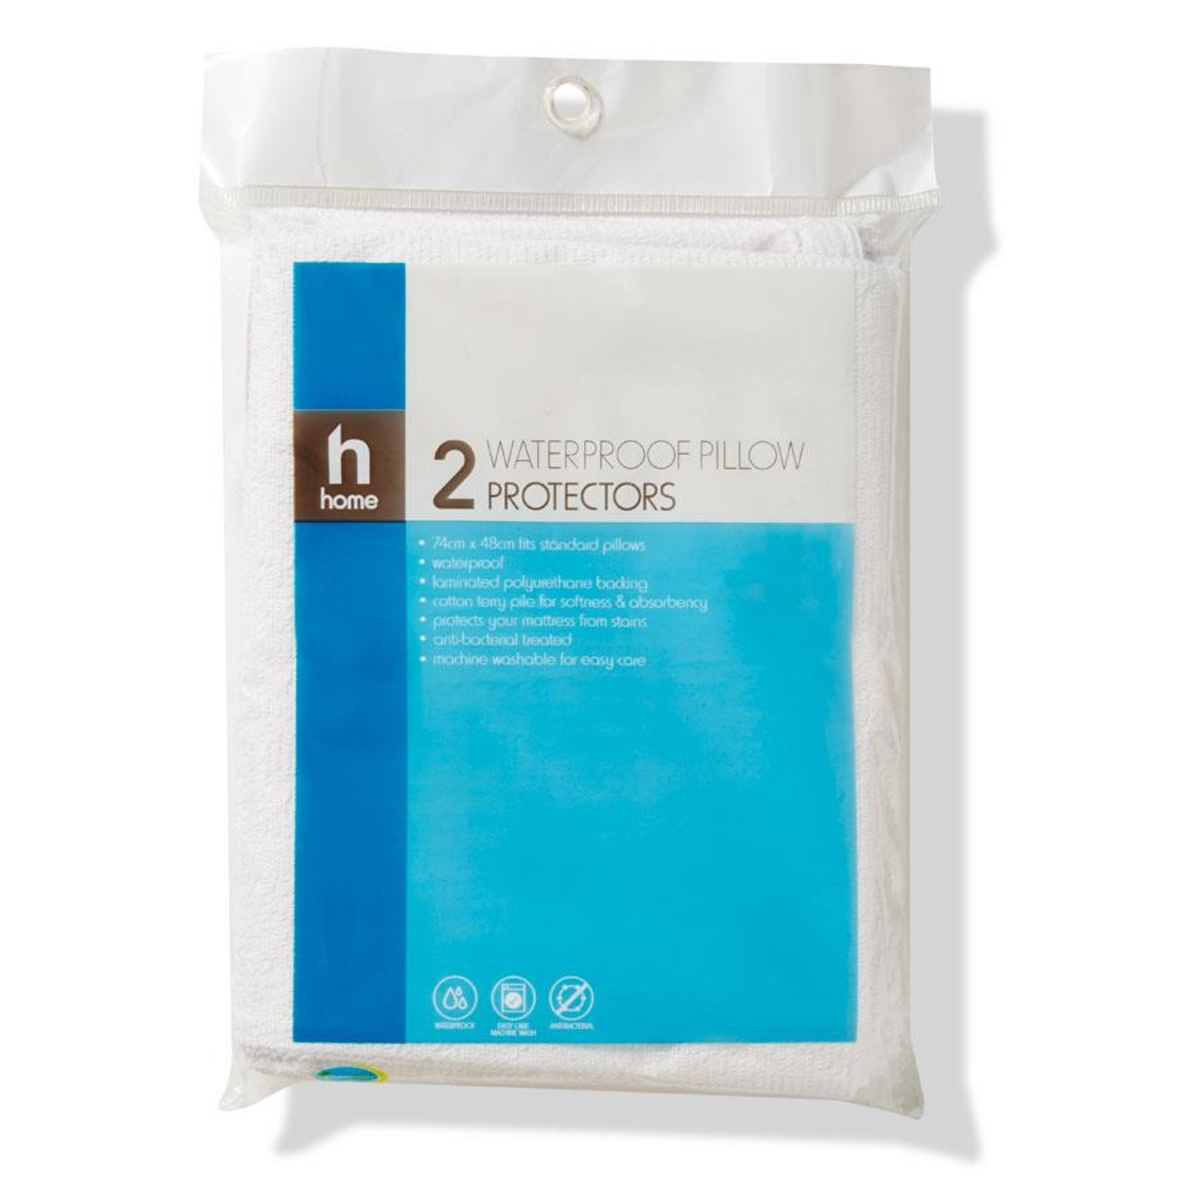 Pillow Waterproof protector pack of 2